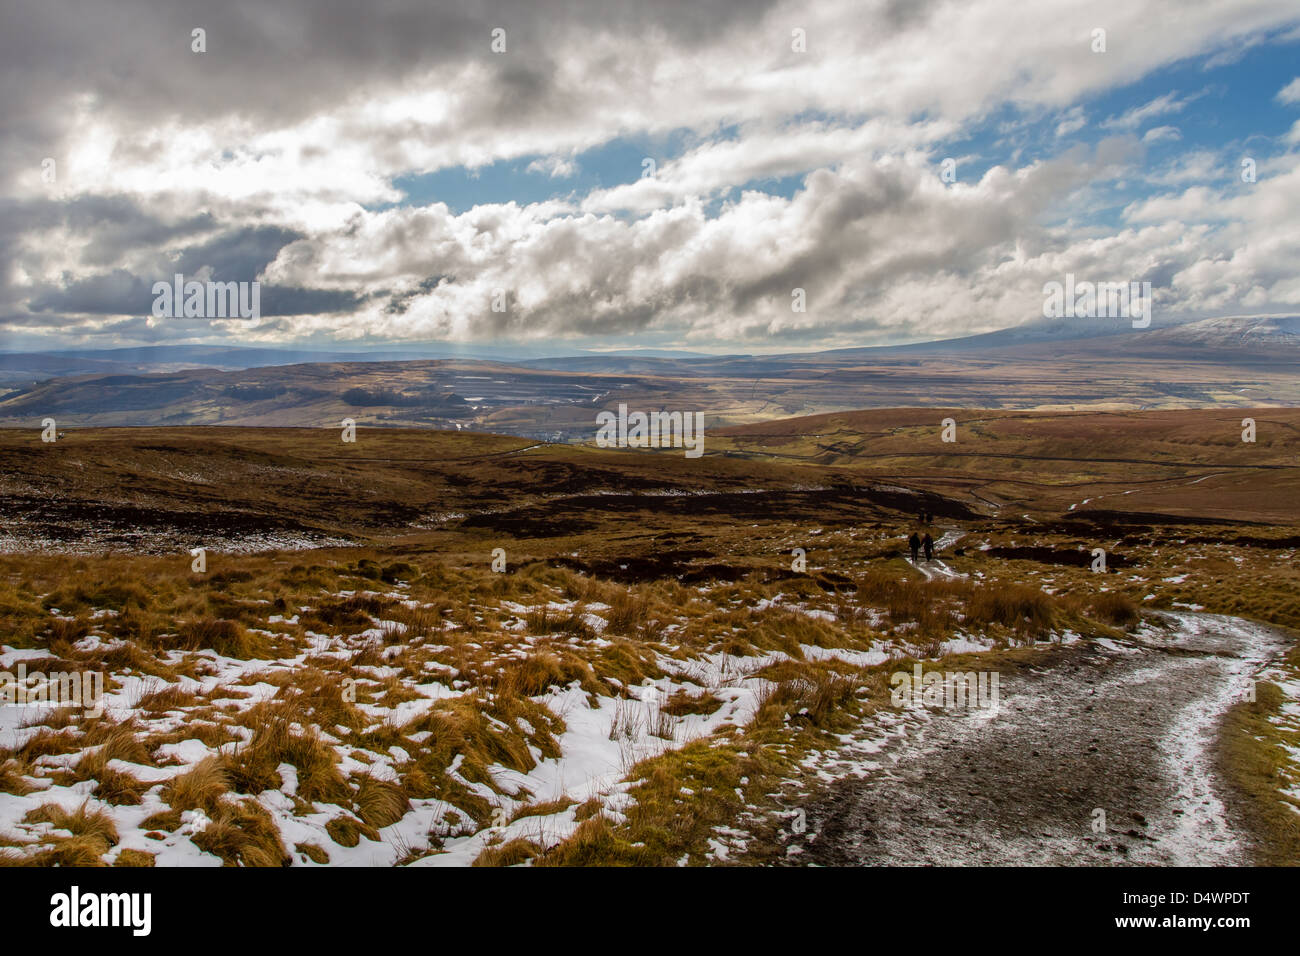 Heading down from Pen-y-Ghent, one of the Yorkshire 3 Peaks and looking over to the Ribblesdale Valley - Stock Image